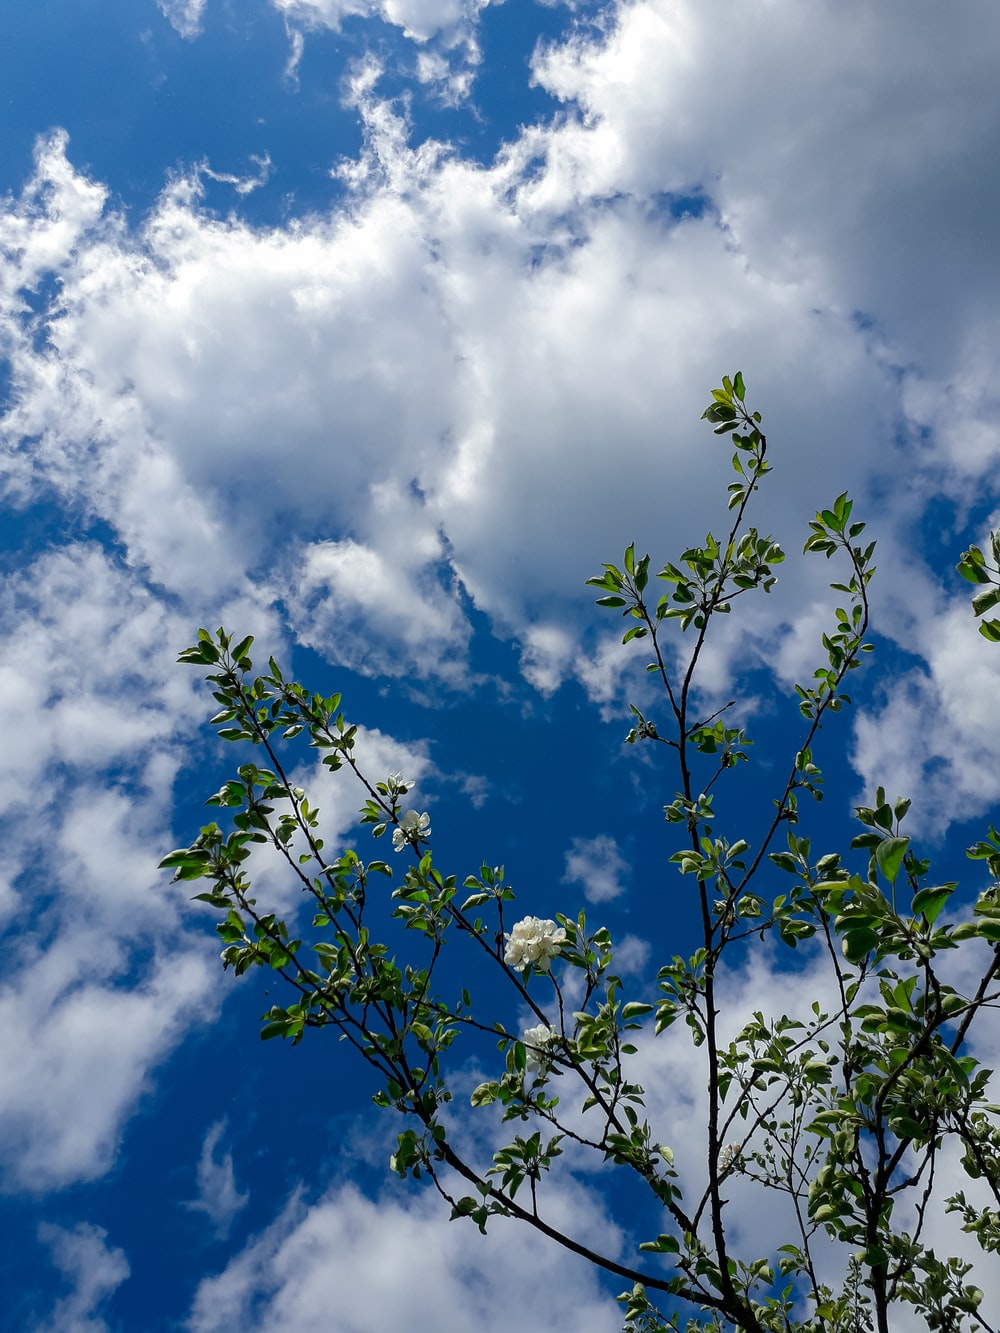 green leaves under blue sky and white clouds during daytime